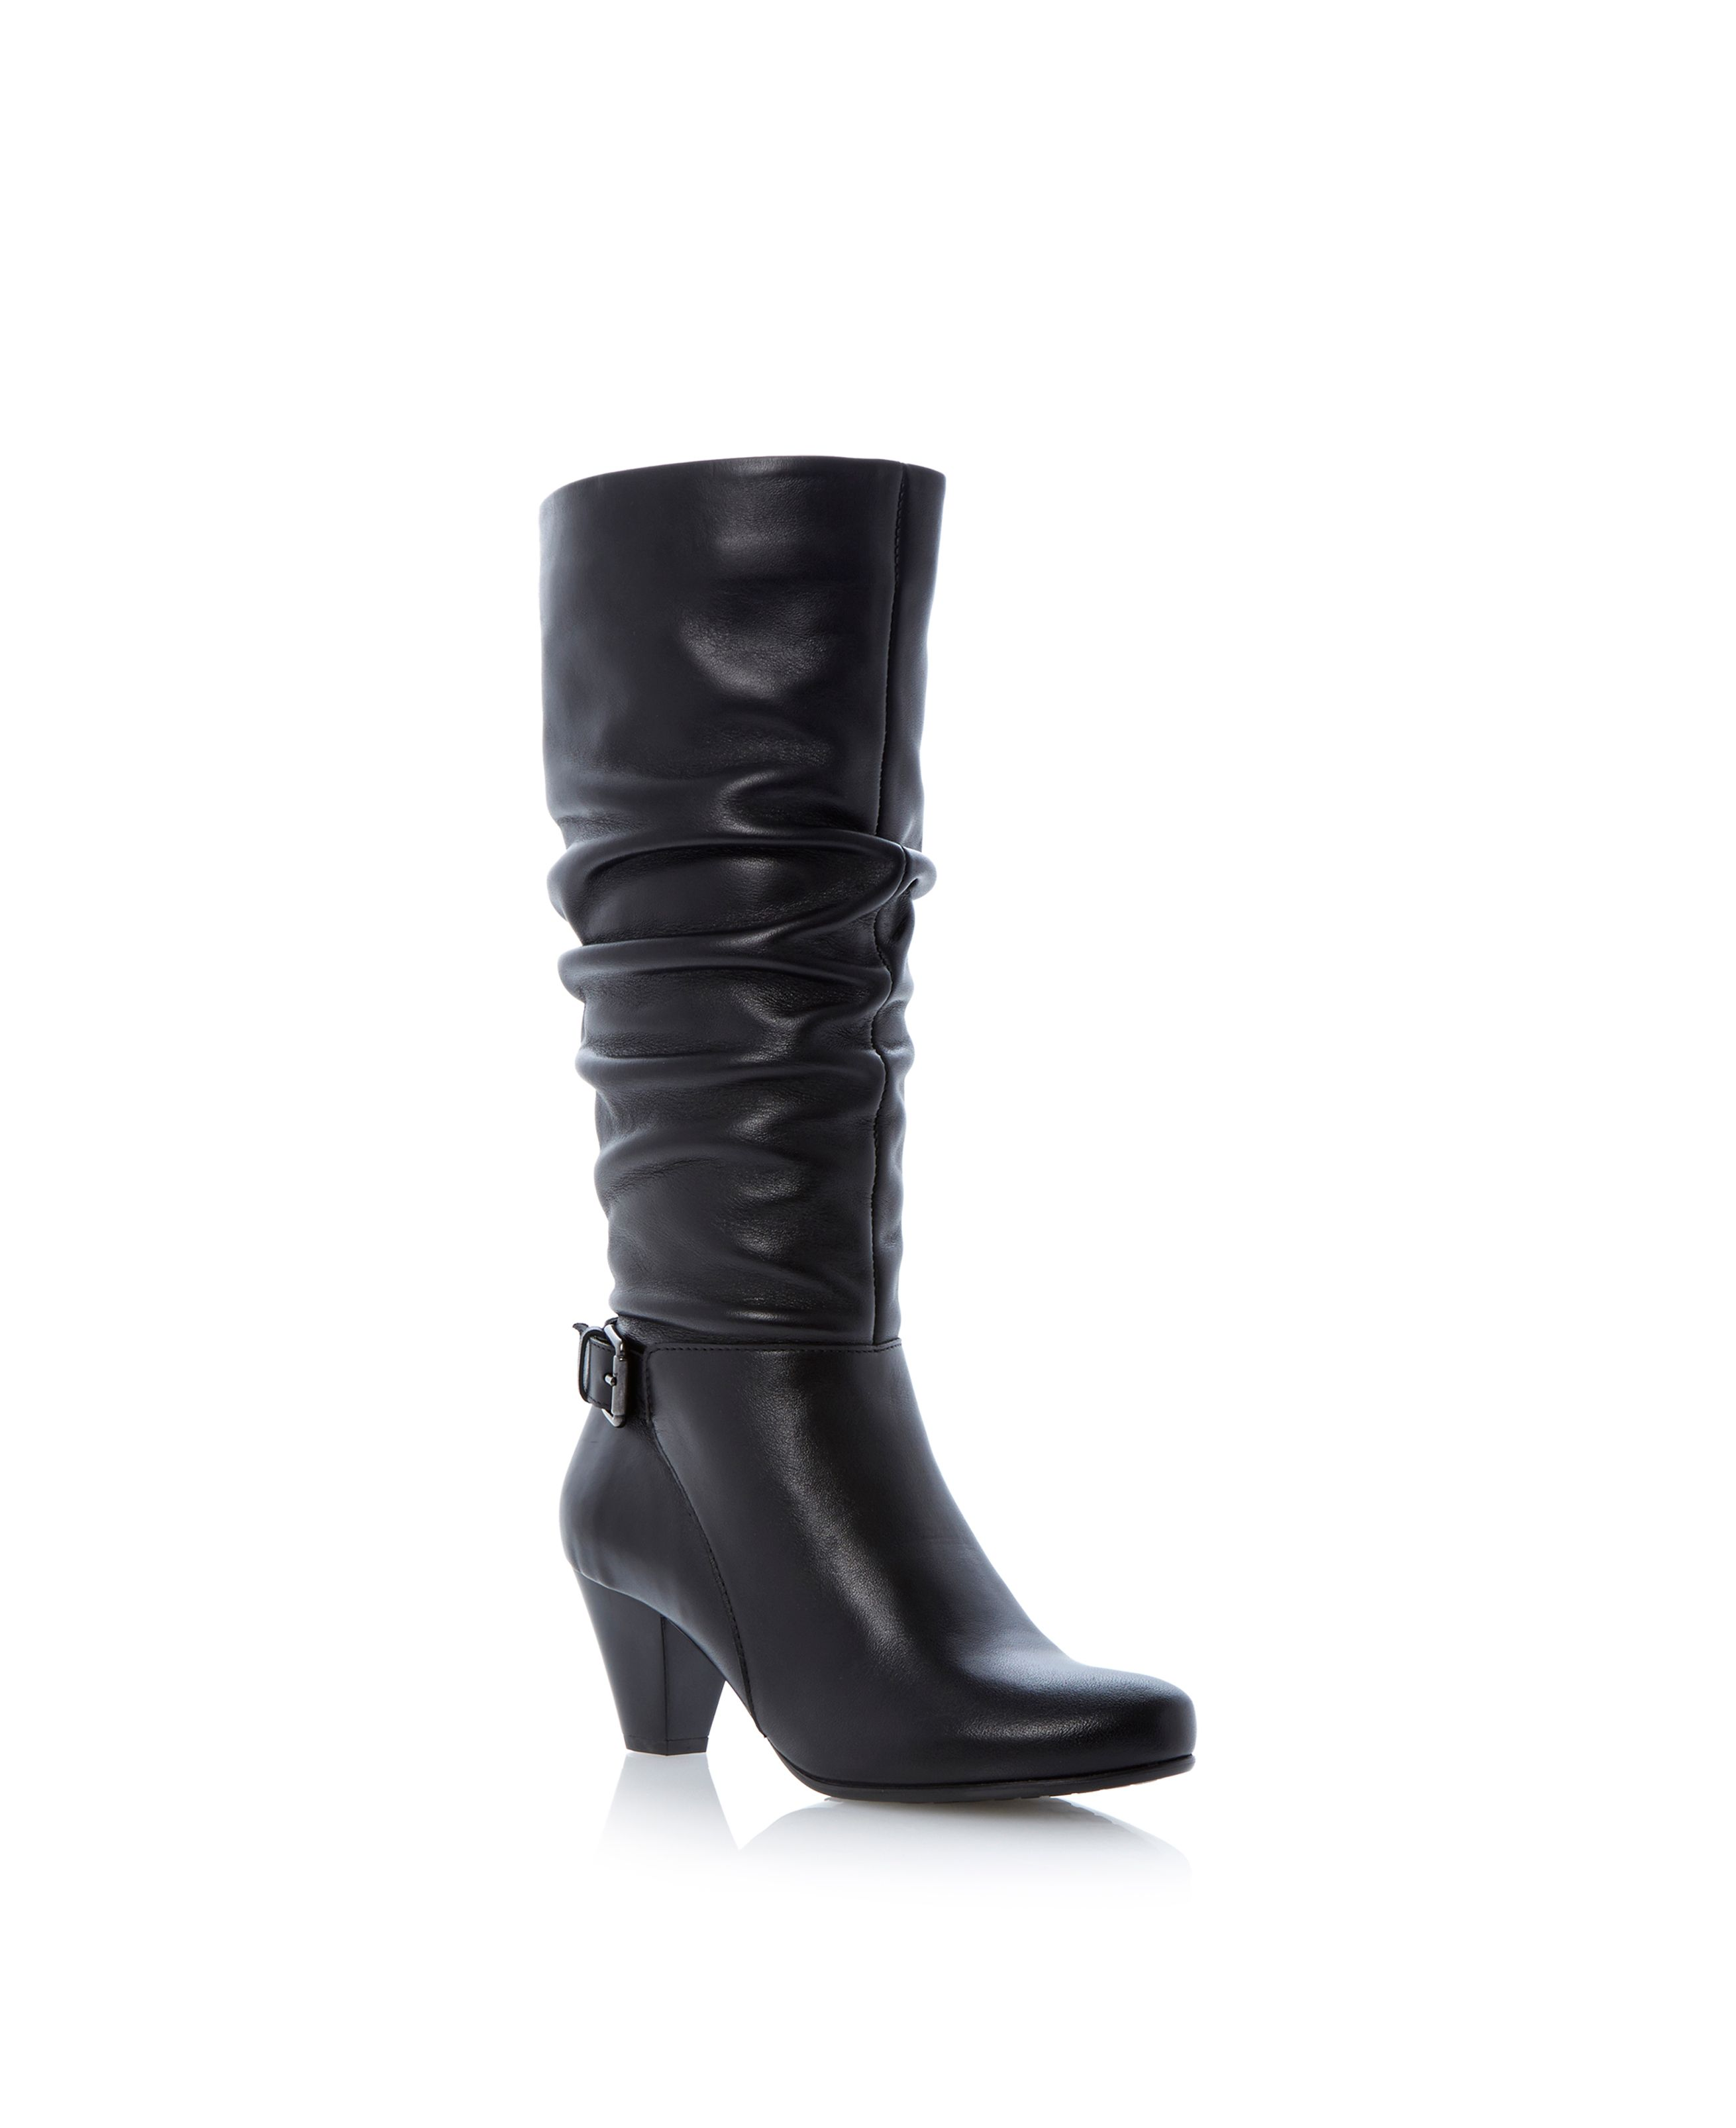 Tarwin rouched leg buckle detail boots